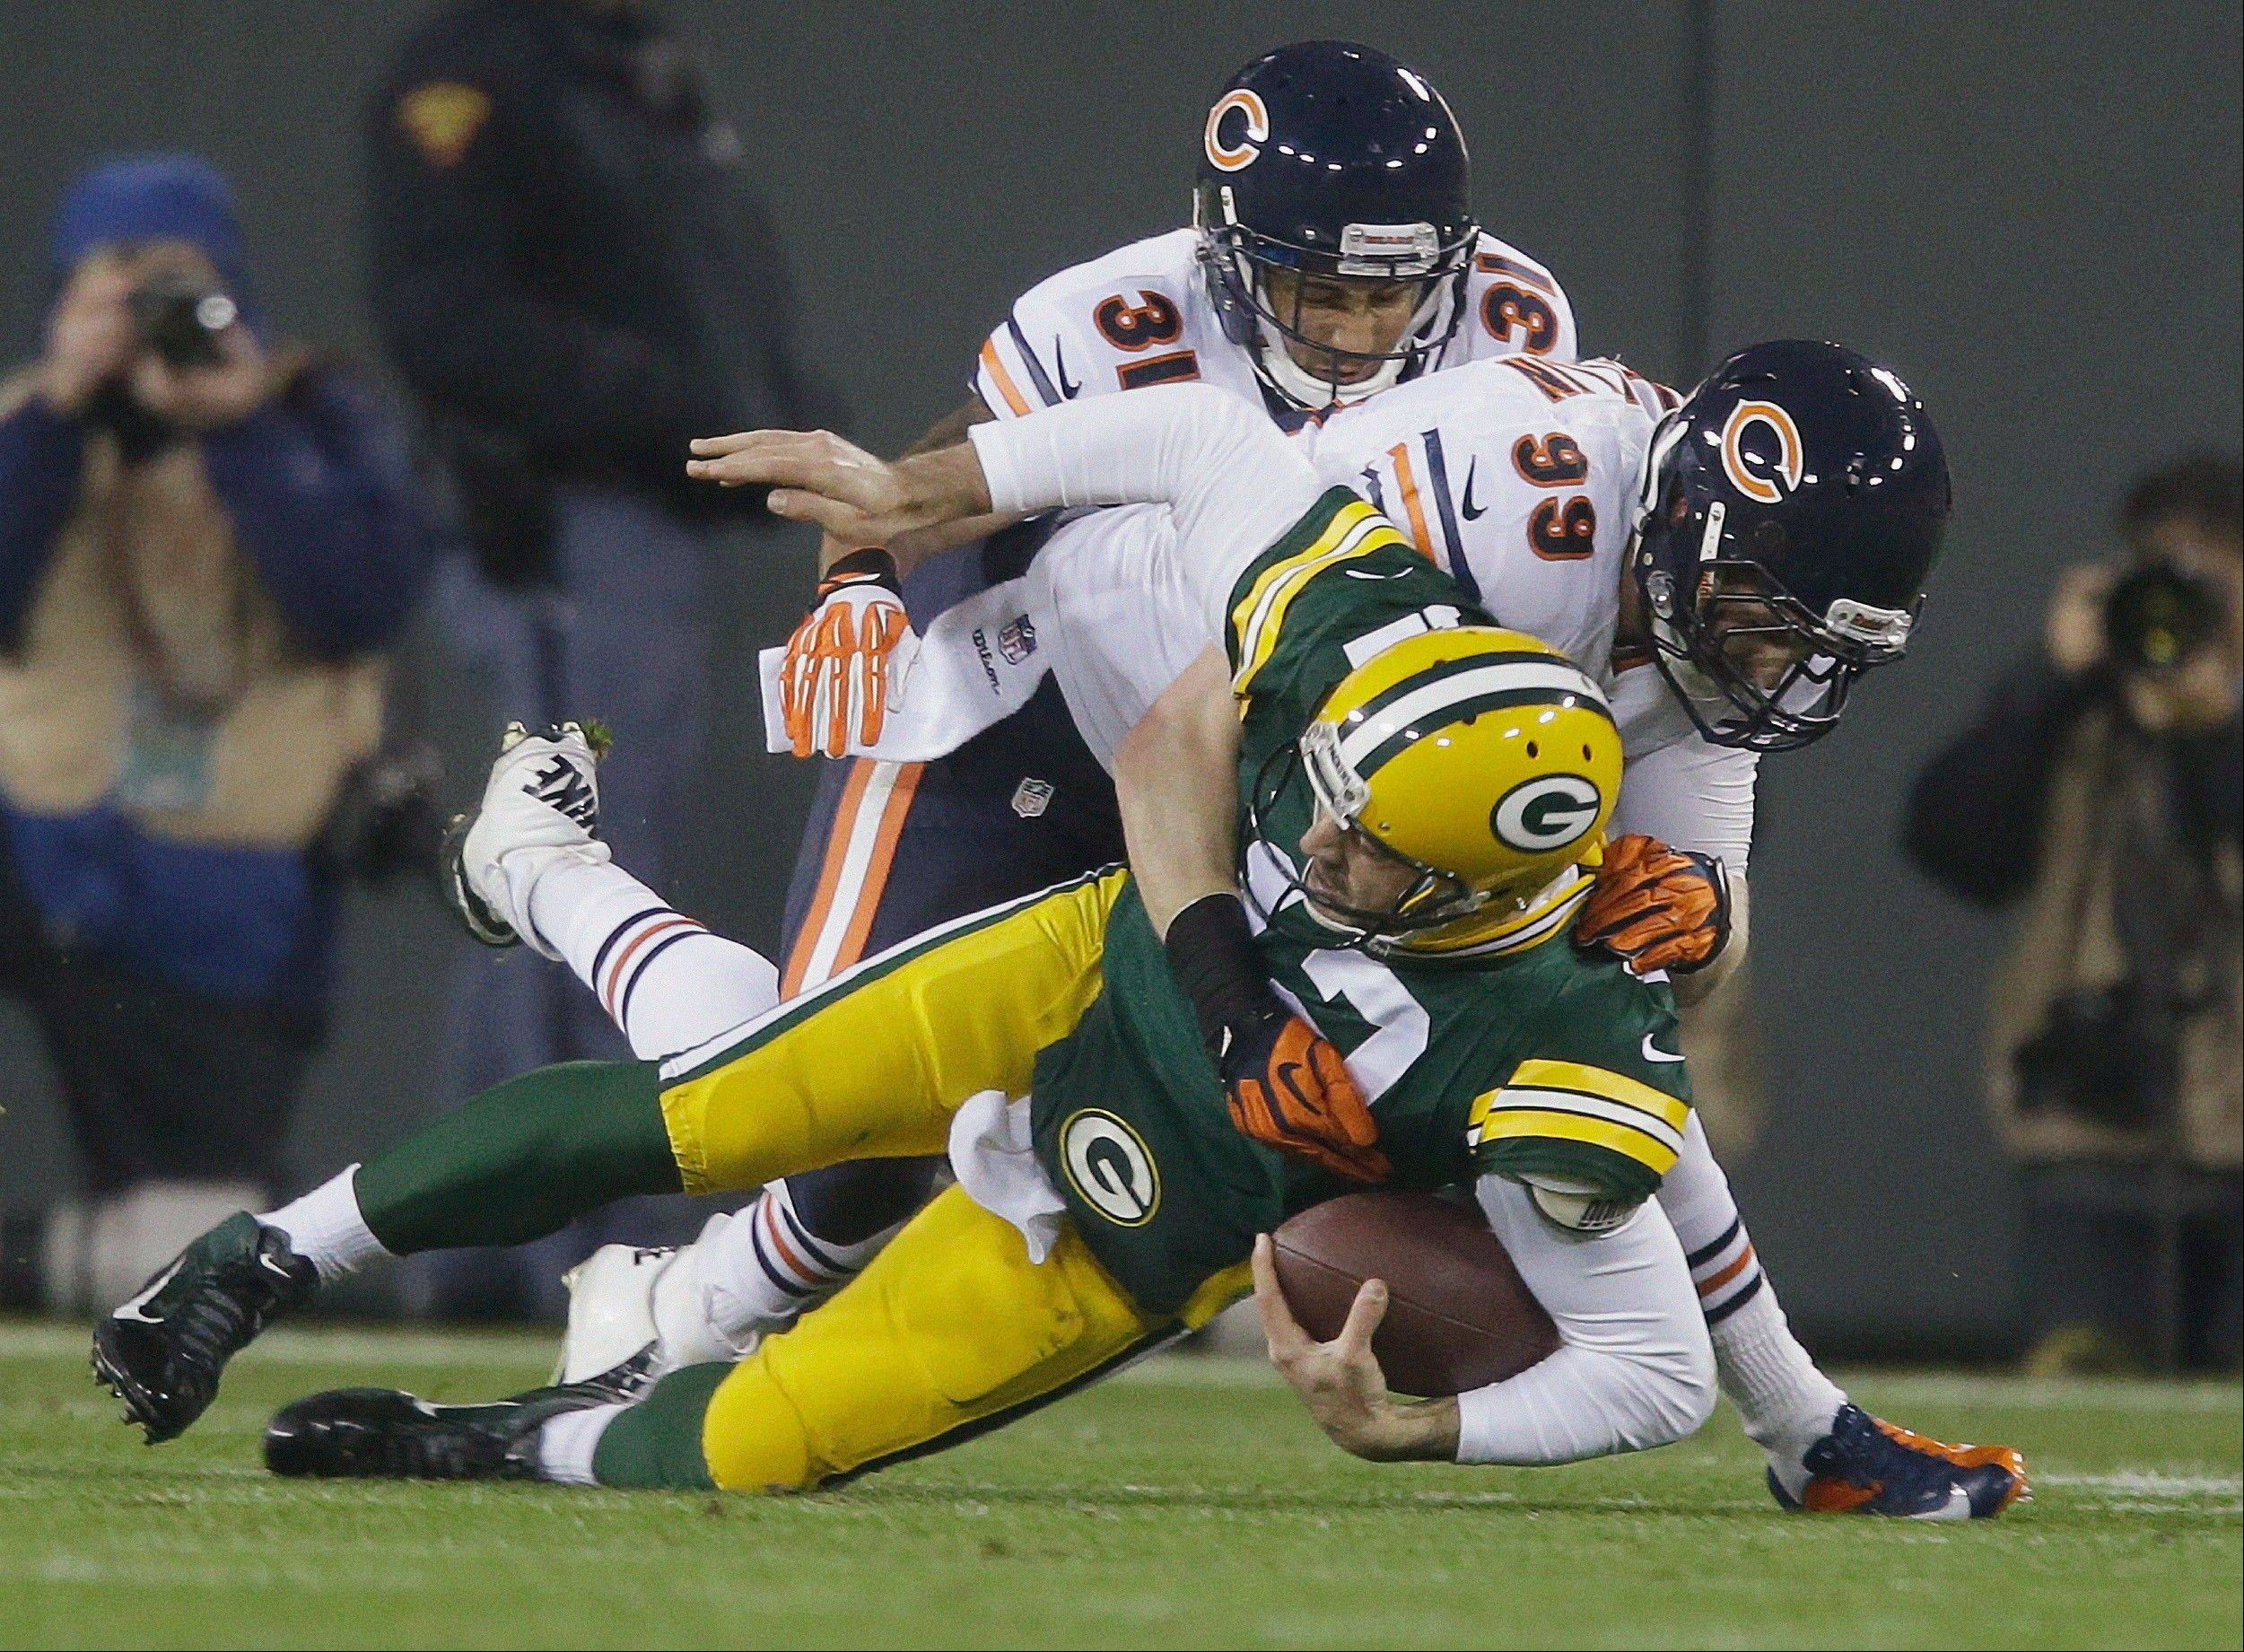 Green Bay Packers quarterback Aaron Rodgers is sacked by Chicago Bears' Shea McClellin (99) and Isaiah Frey (31) during the first half of an NFL football game Monday in Green Bay, Wis. Rodgers left the game after the play and didn't return.